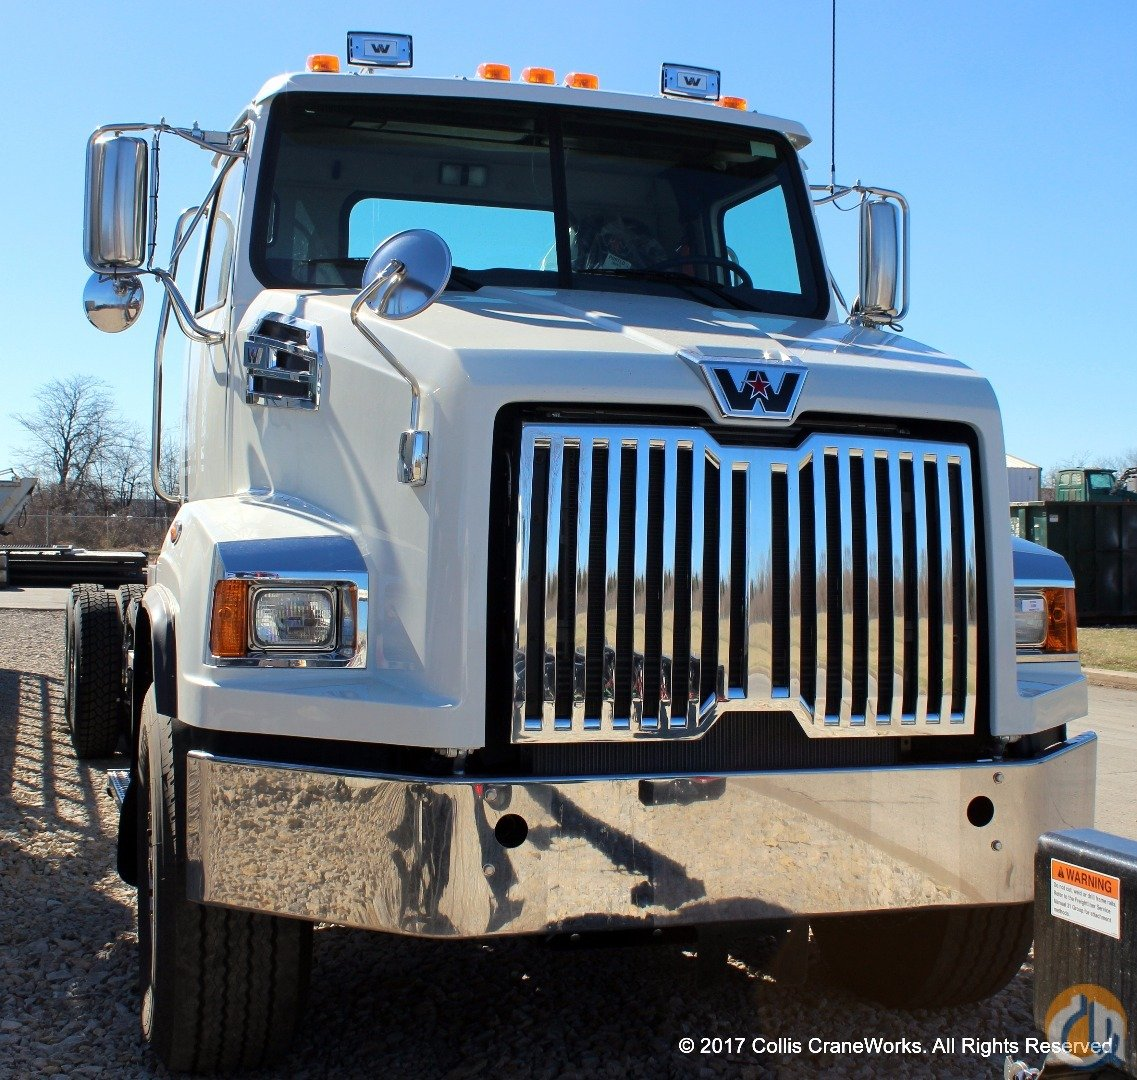 2018 Western Star 4700SB Chassis Cab  Chassis Trucks WESTERN STAR 4700SB CraneWorks Inc. 21629 on CraneNetwork.com